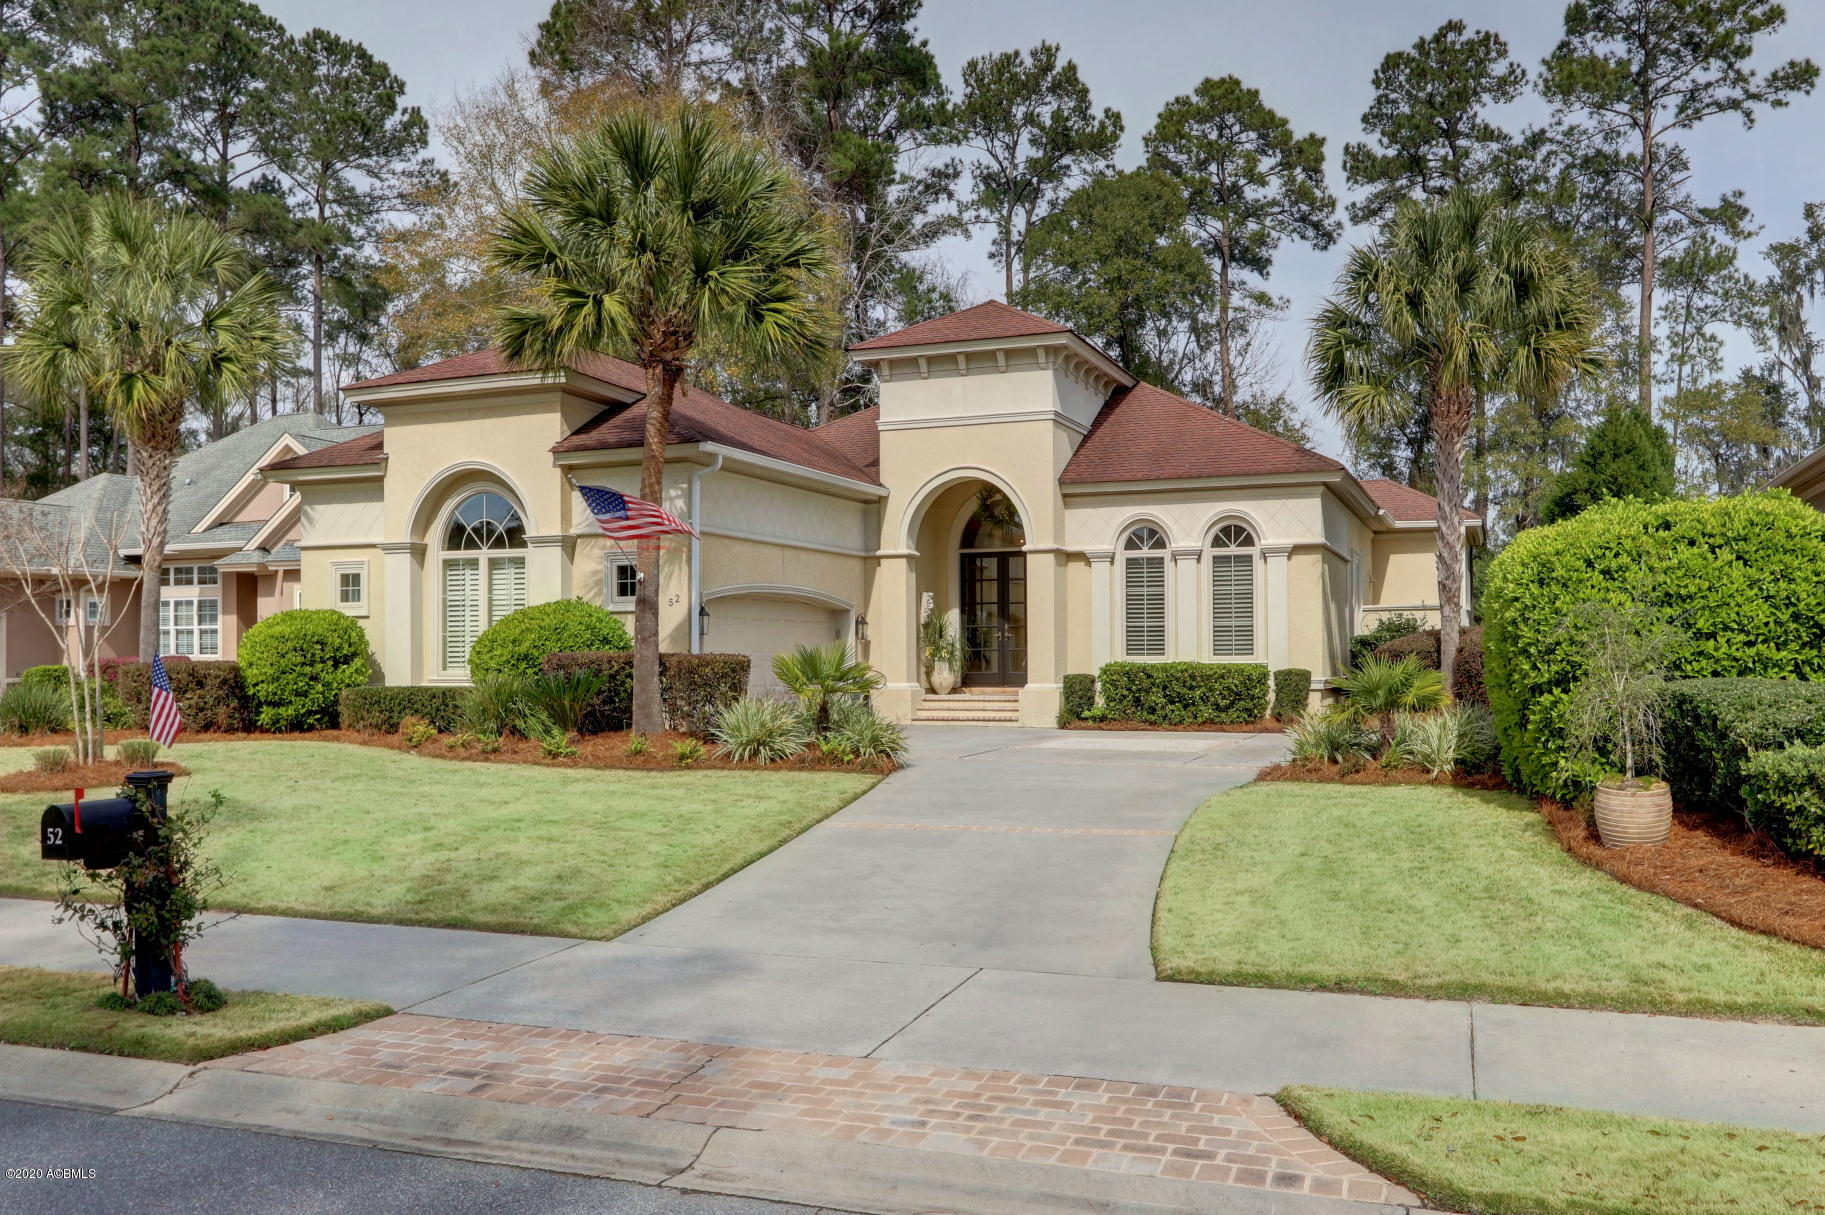 Photo of 52 Wicklow Drive, Bluffton, SC 29910